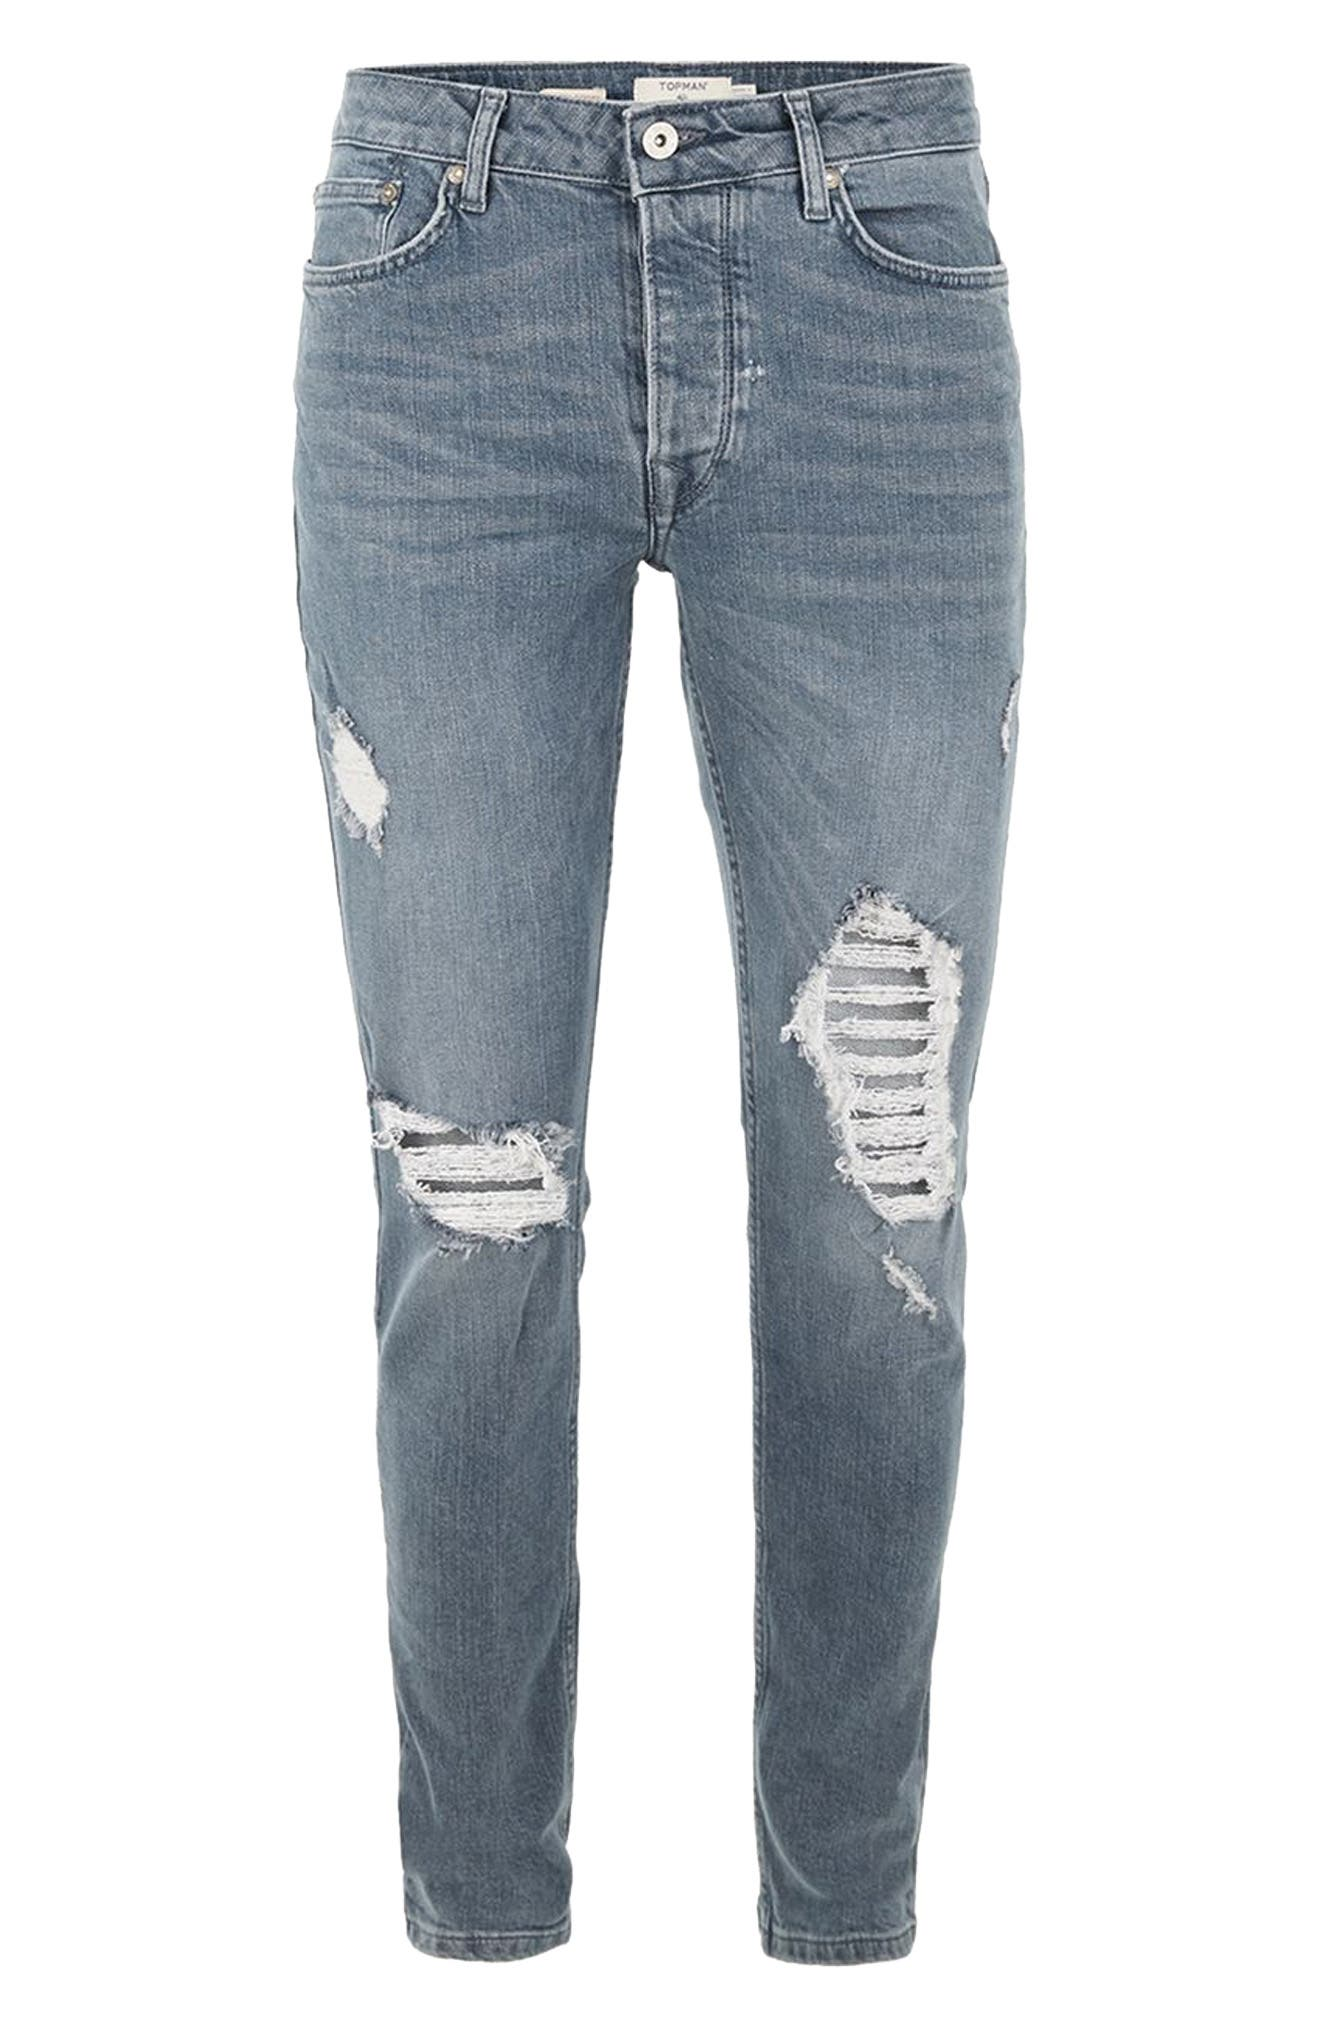 Extreme Rip Stretch Jeans,                             Alternate thumbnail 4, color,                             020